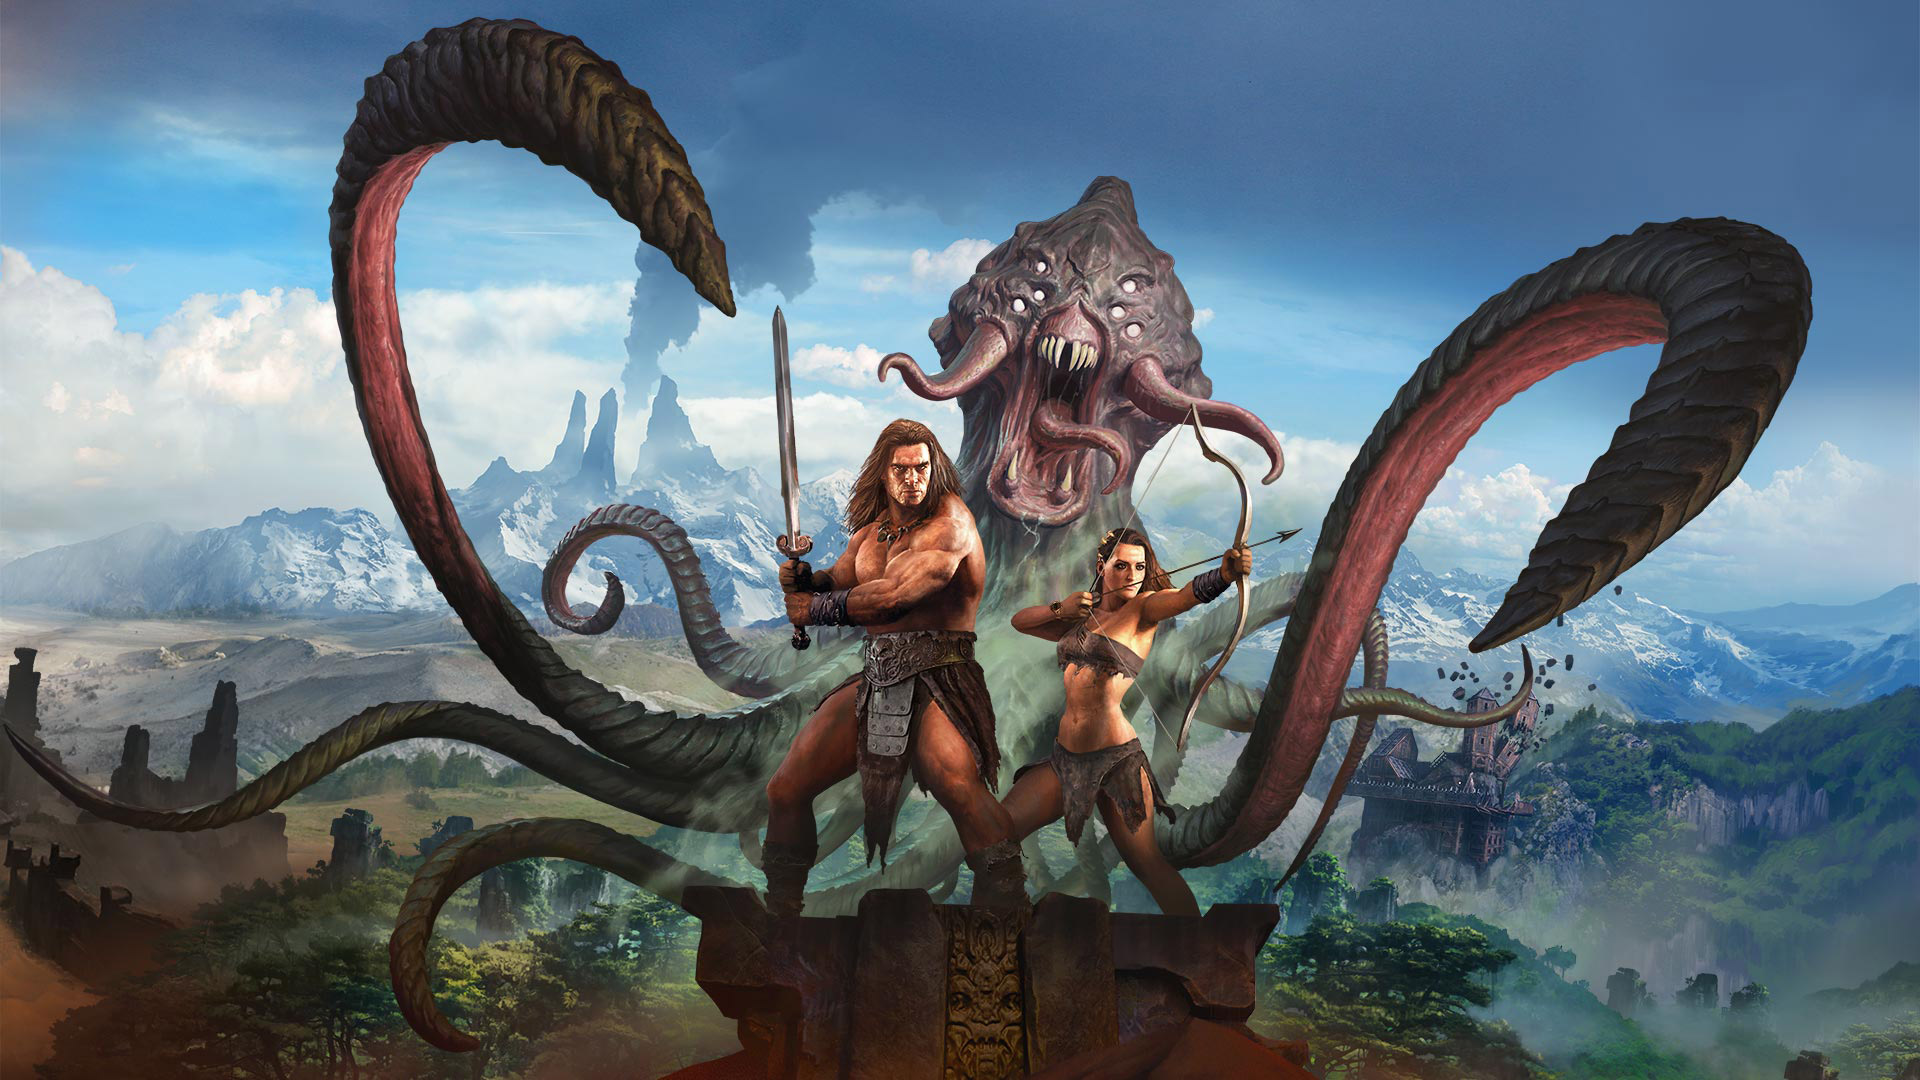 Free Conan Exiles Wallpaper in 1920x1080